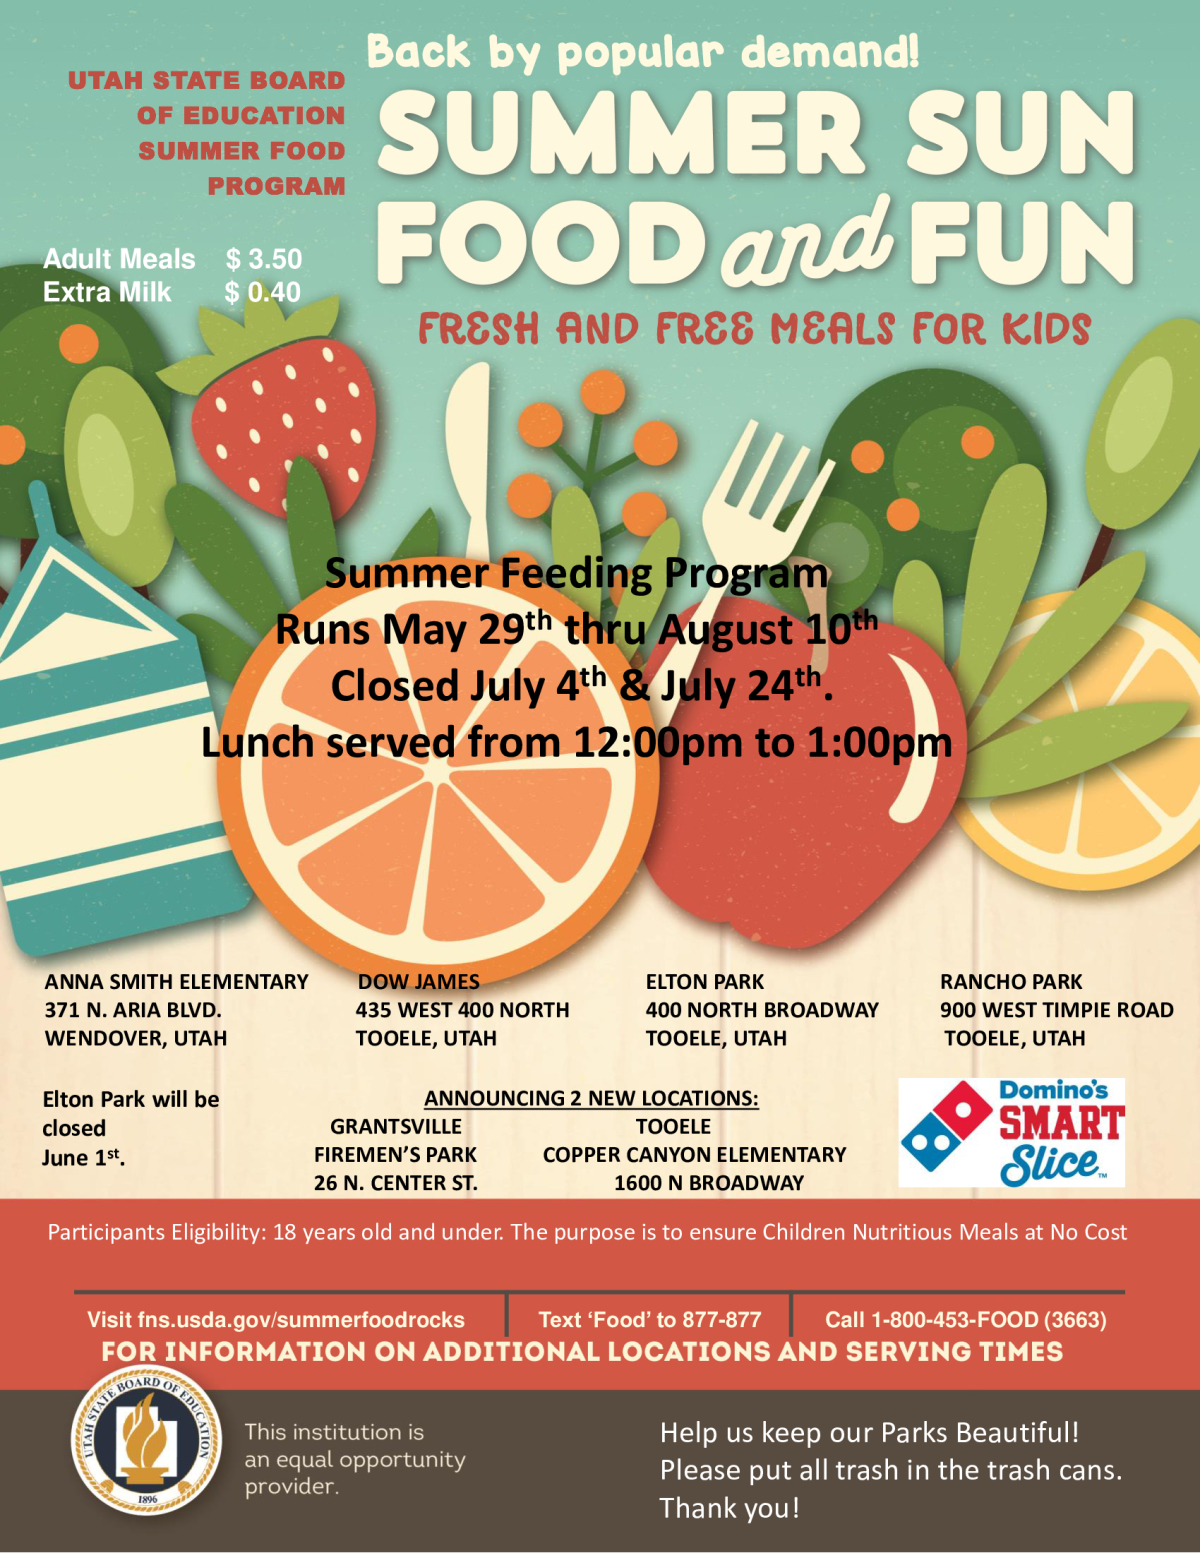 Summer Food Service Program (FREE LUNCH for KIDS) @ See locations listed on the flyer